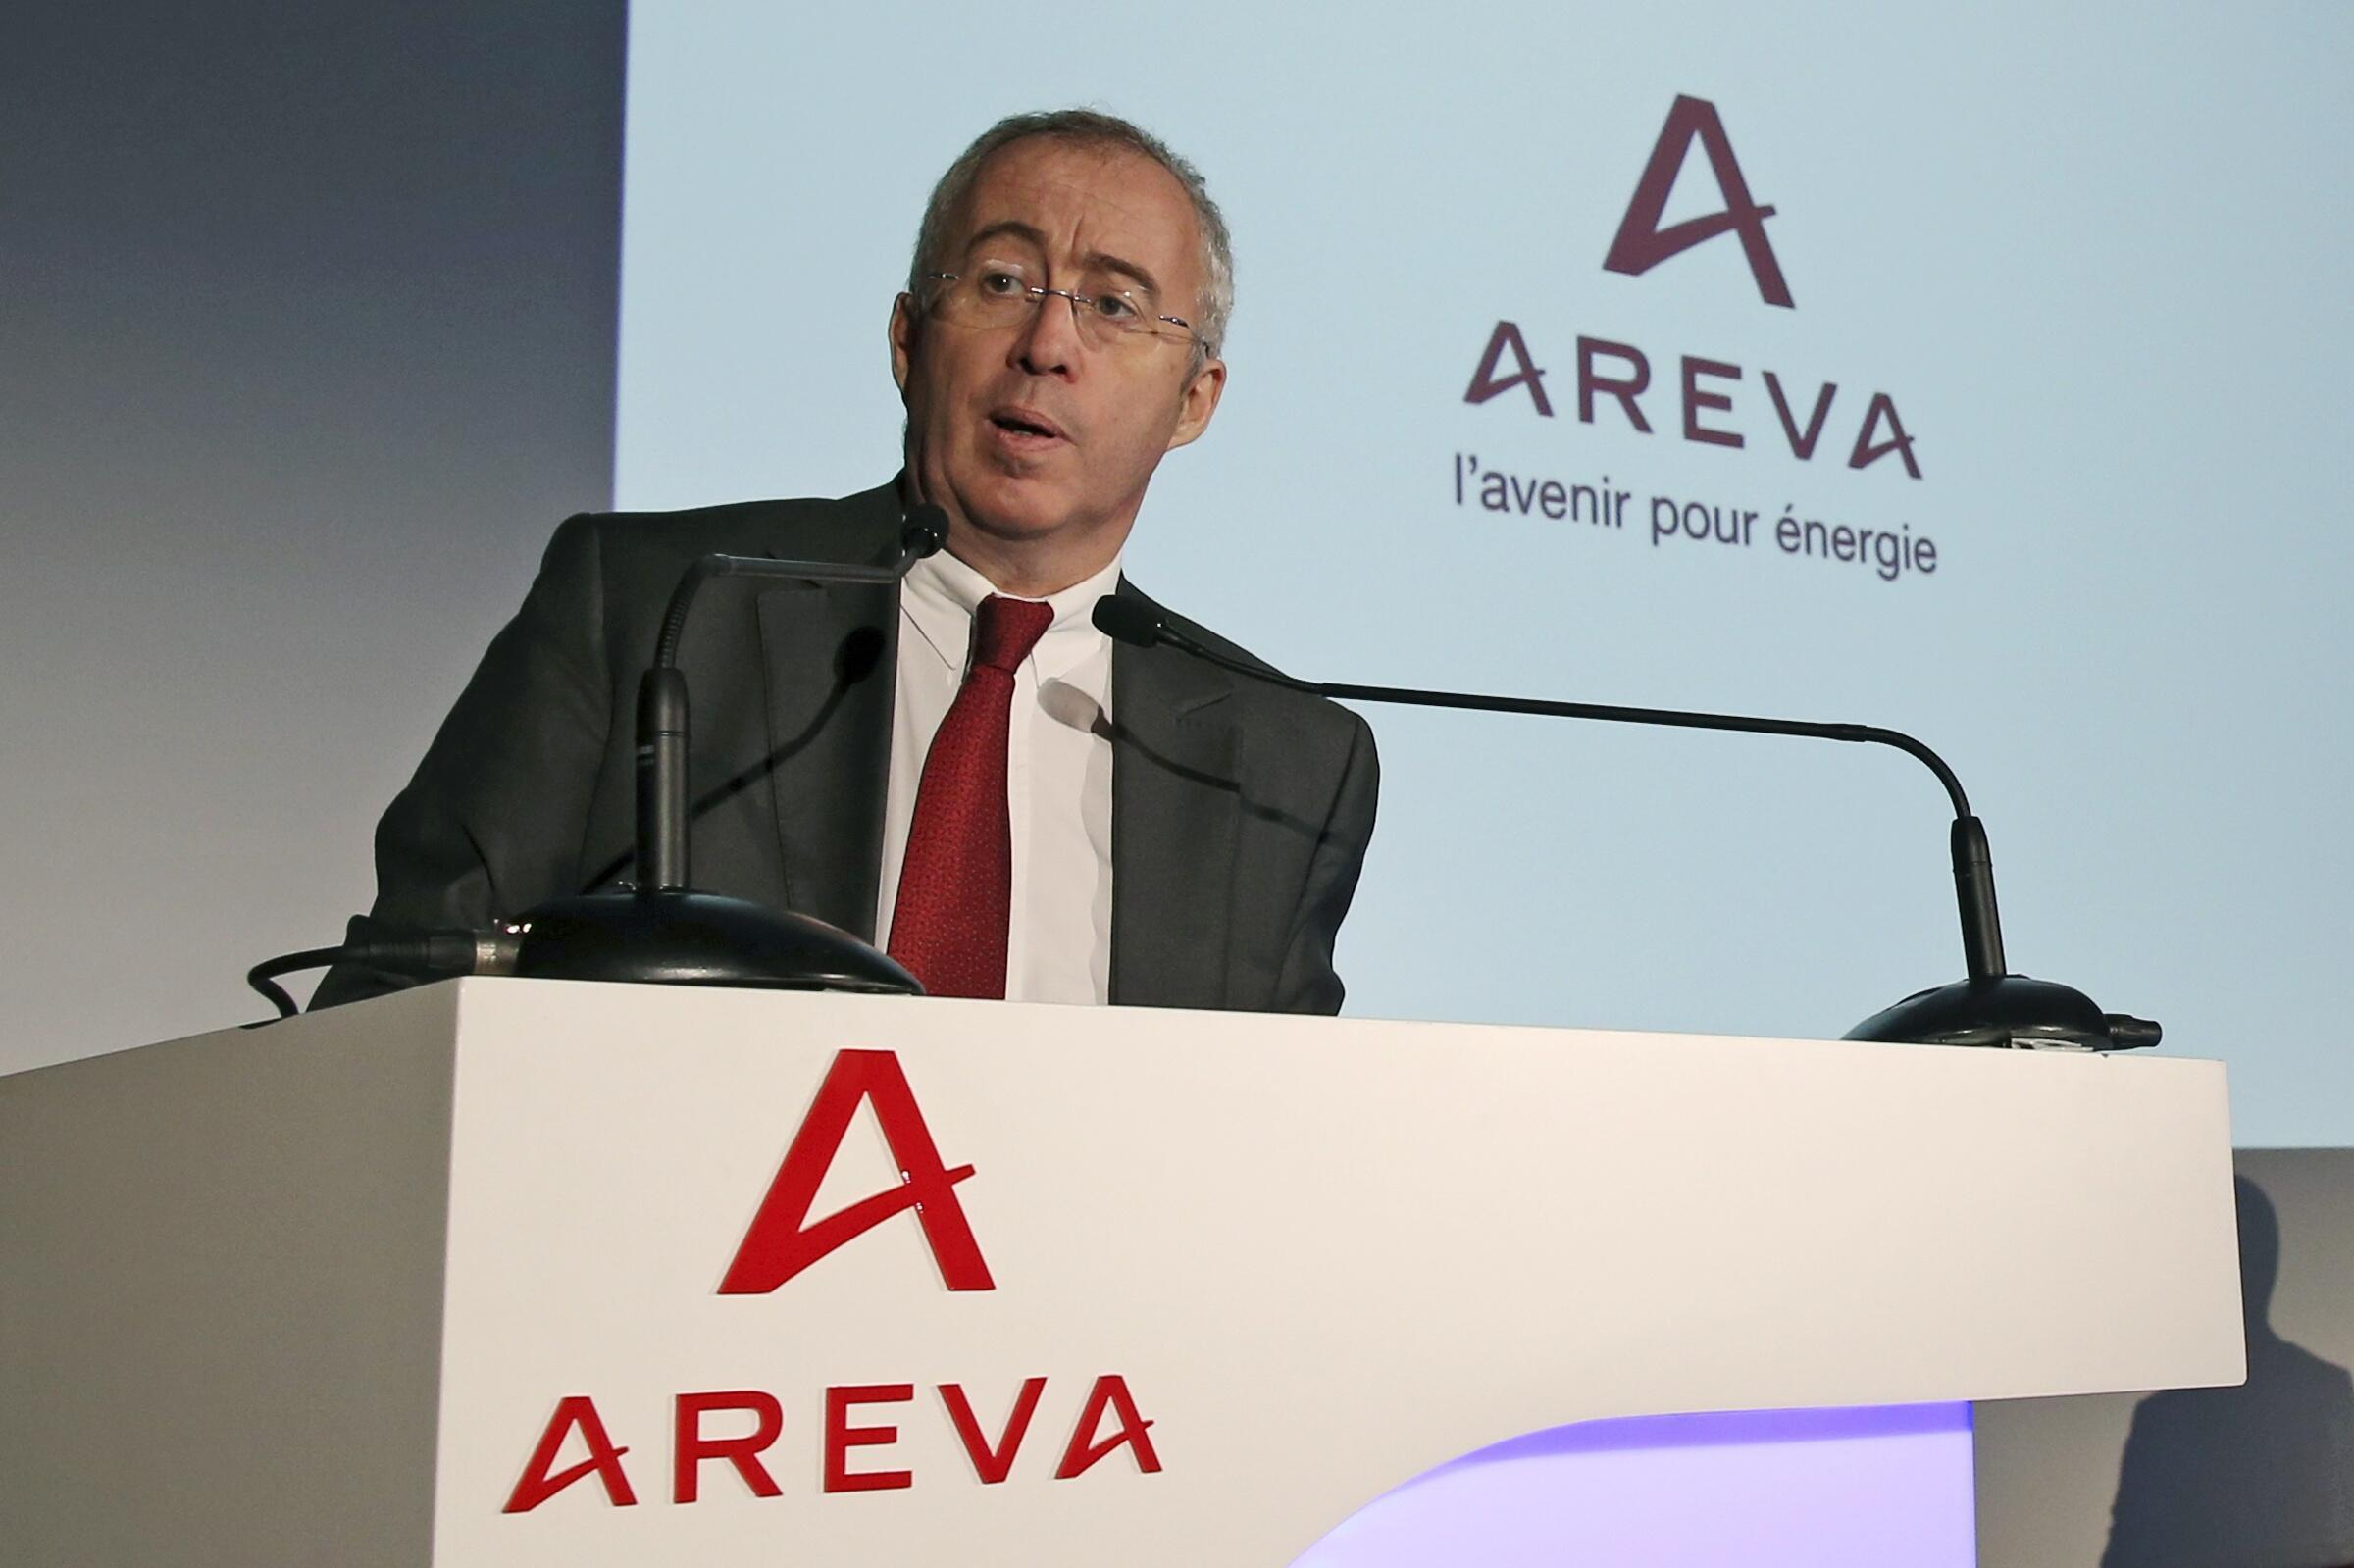 Areva boss Luc Oursel met Niger's President  Mahamadou Issoufou on Friday